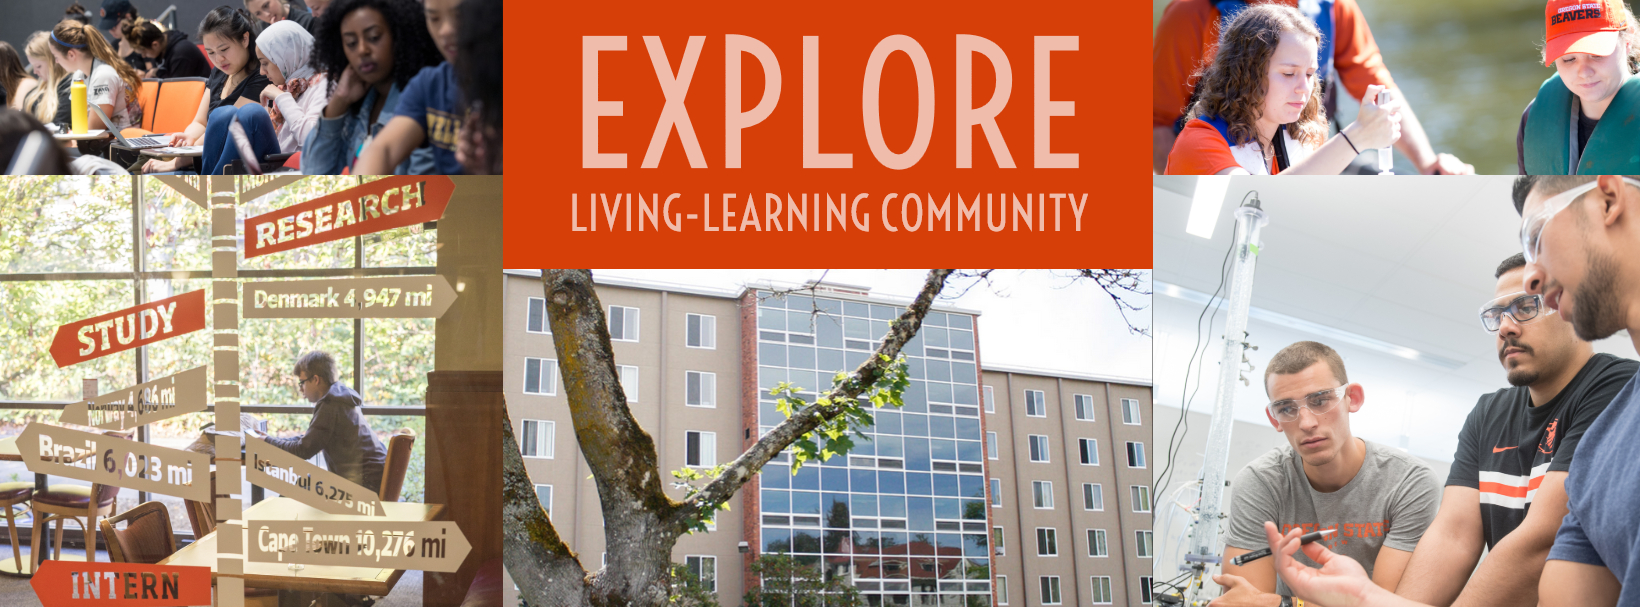 This image links to the website for the EXPLORE Living Learning Community